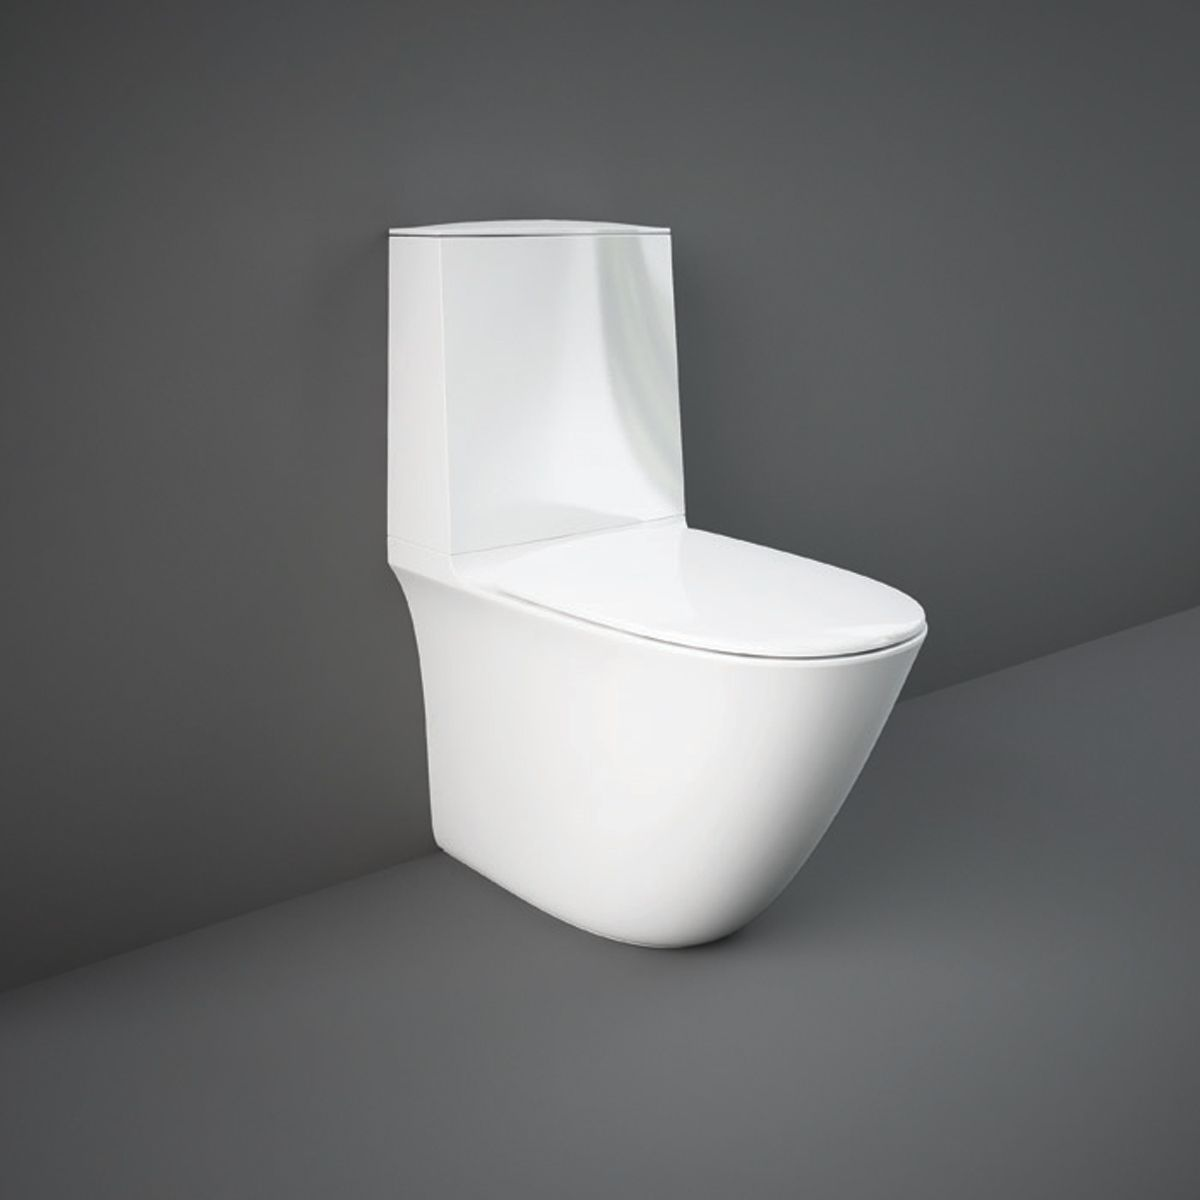 RAK Sensation Close Coupled Back To Wall Touchless Flush Toilet with Soft Close Seat